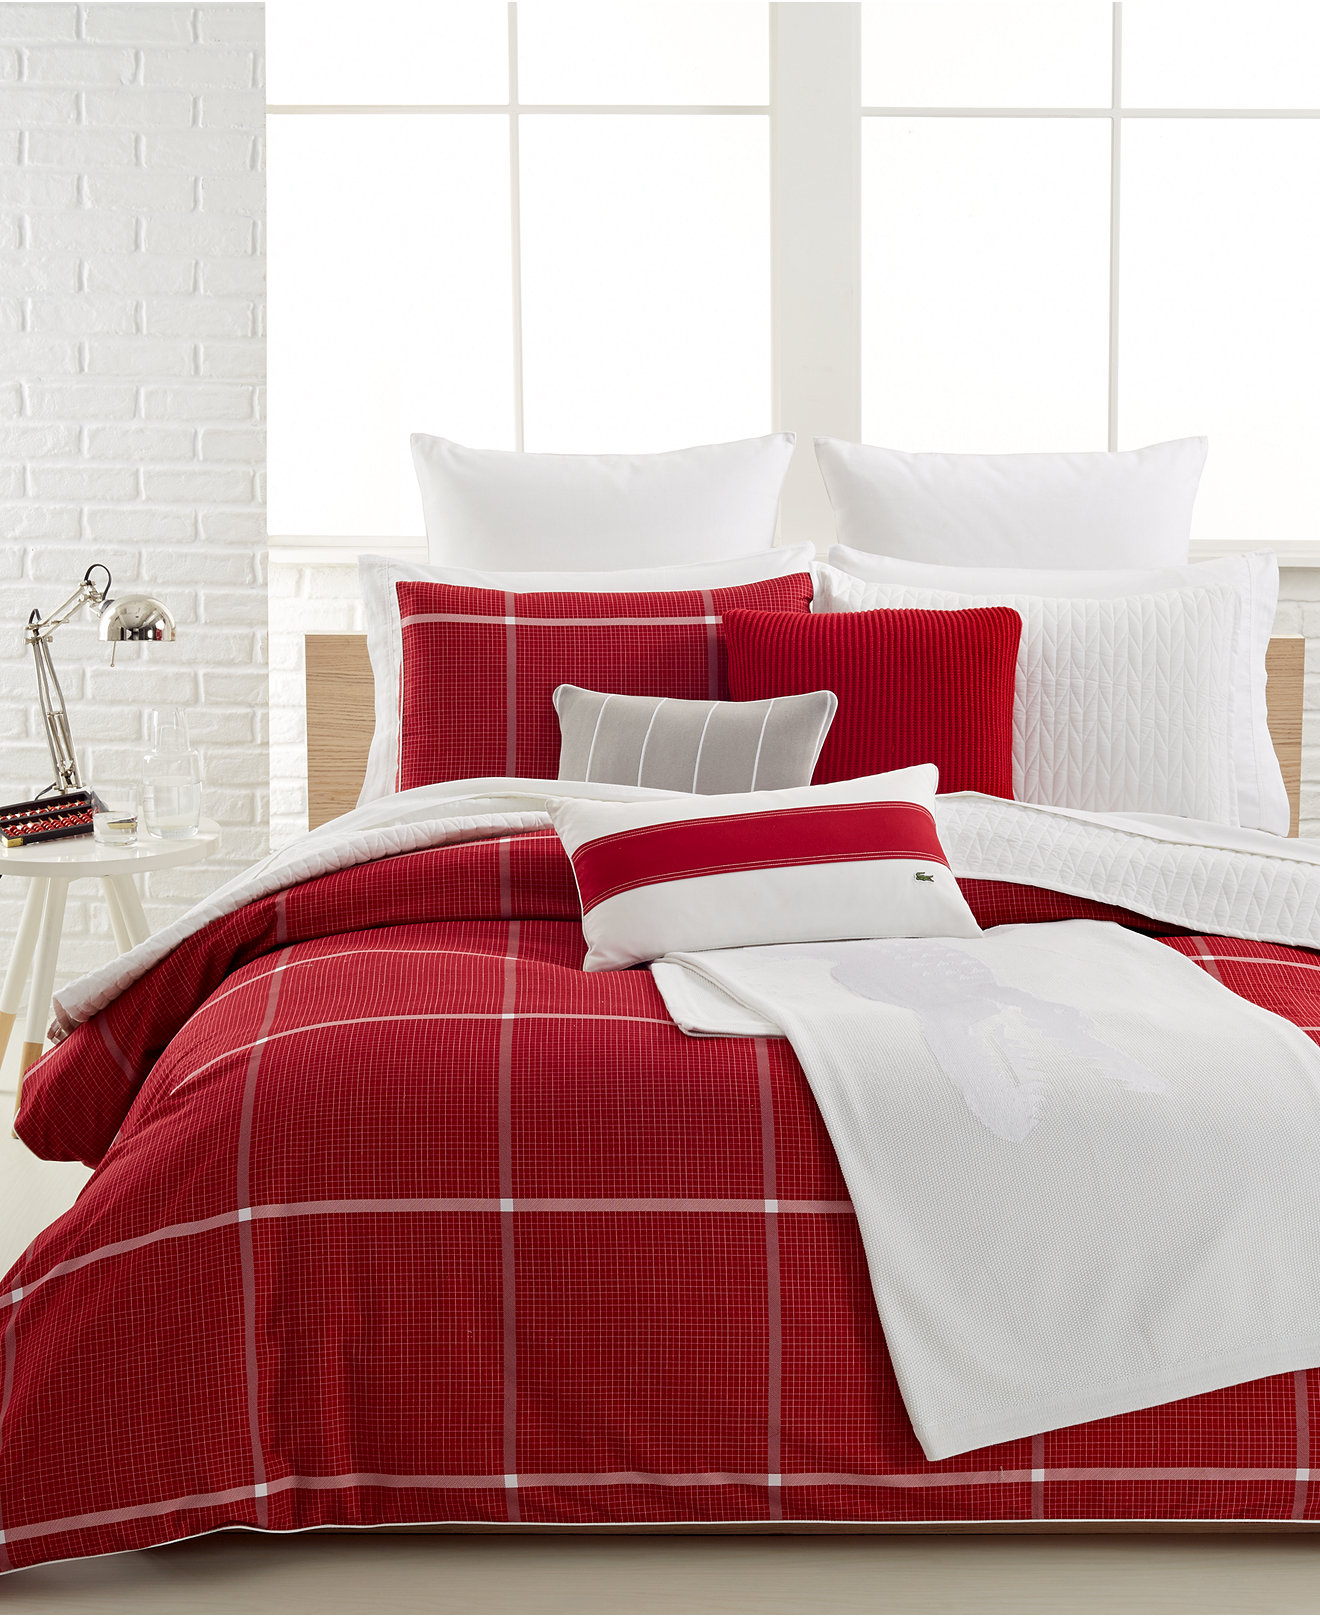 White and red bed sheets - Lacoste Cambon Bedding Collection 100 Cotton Bedding Collections Bed Bath Macy S